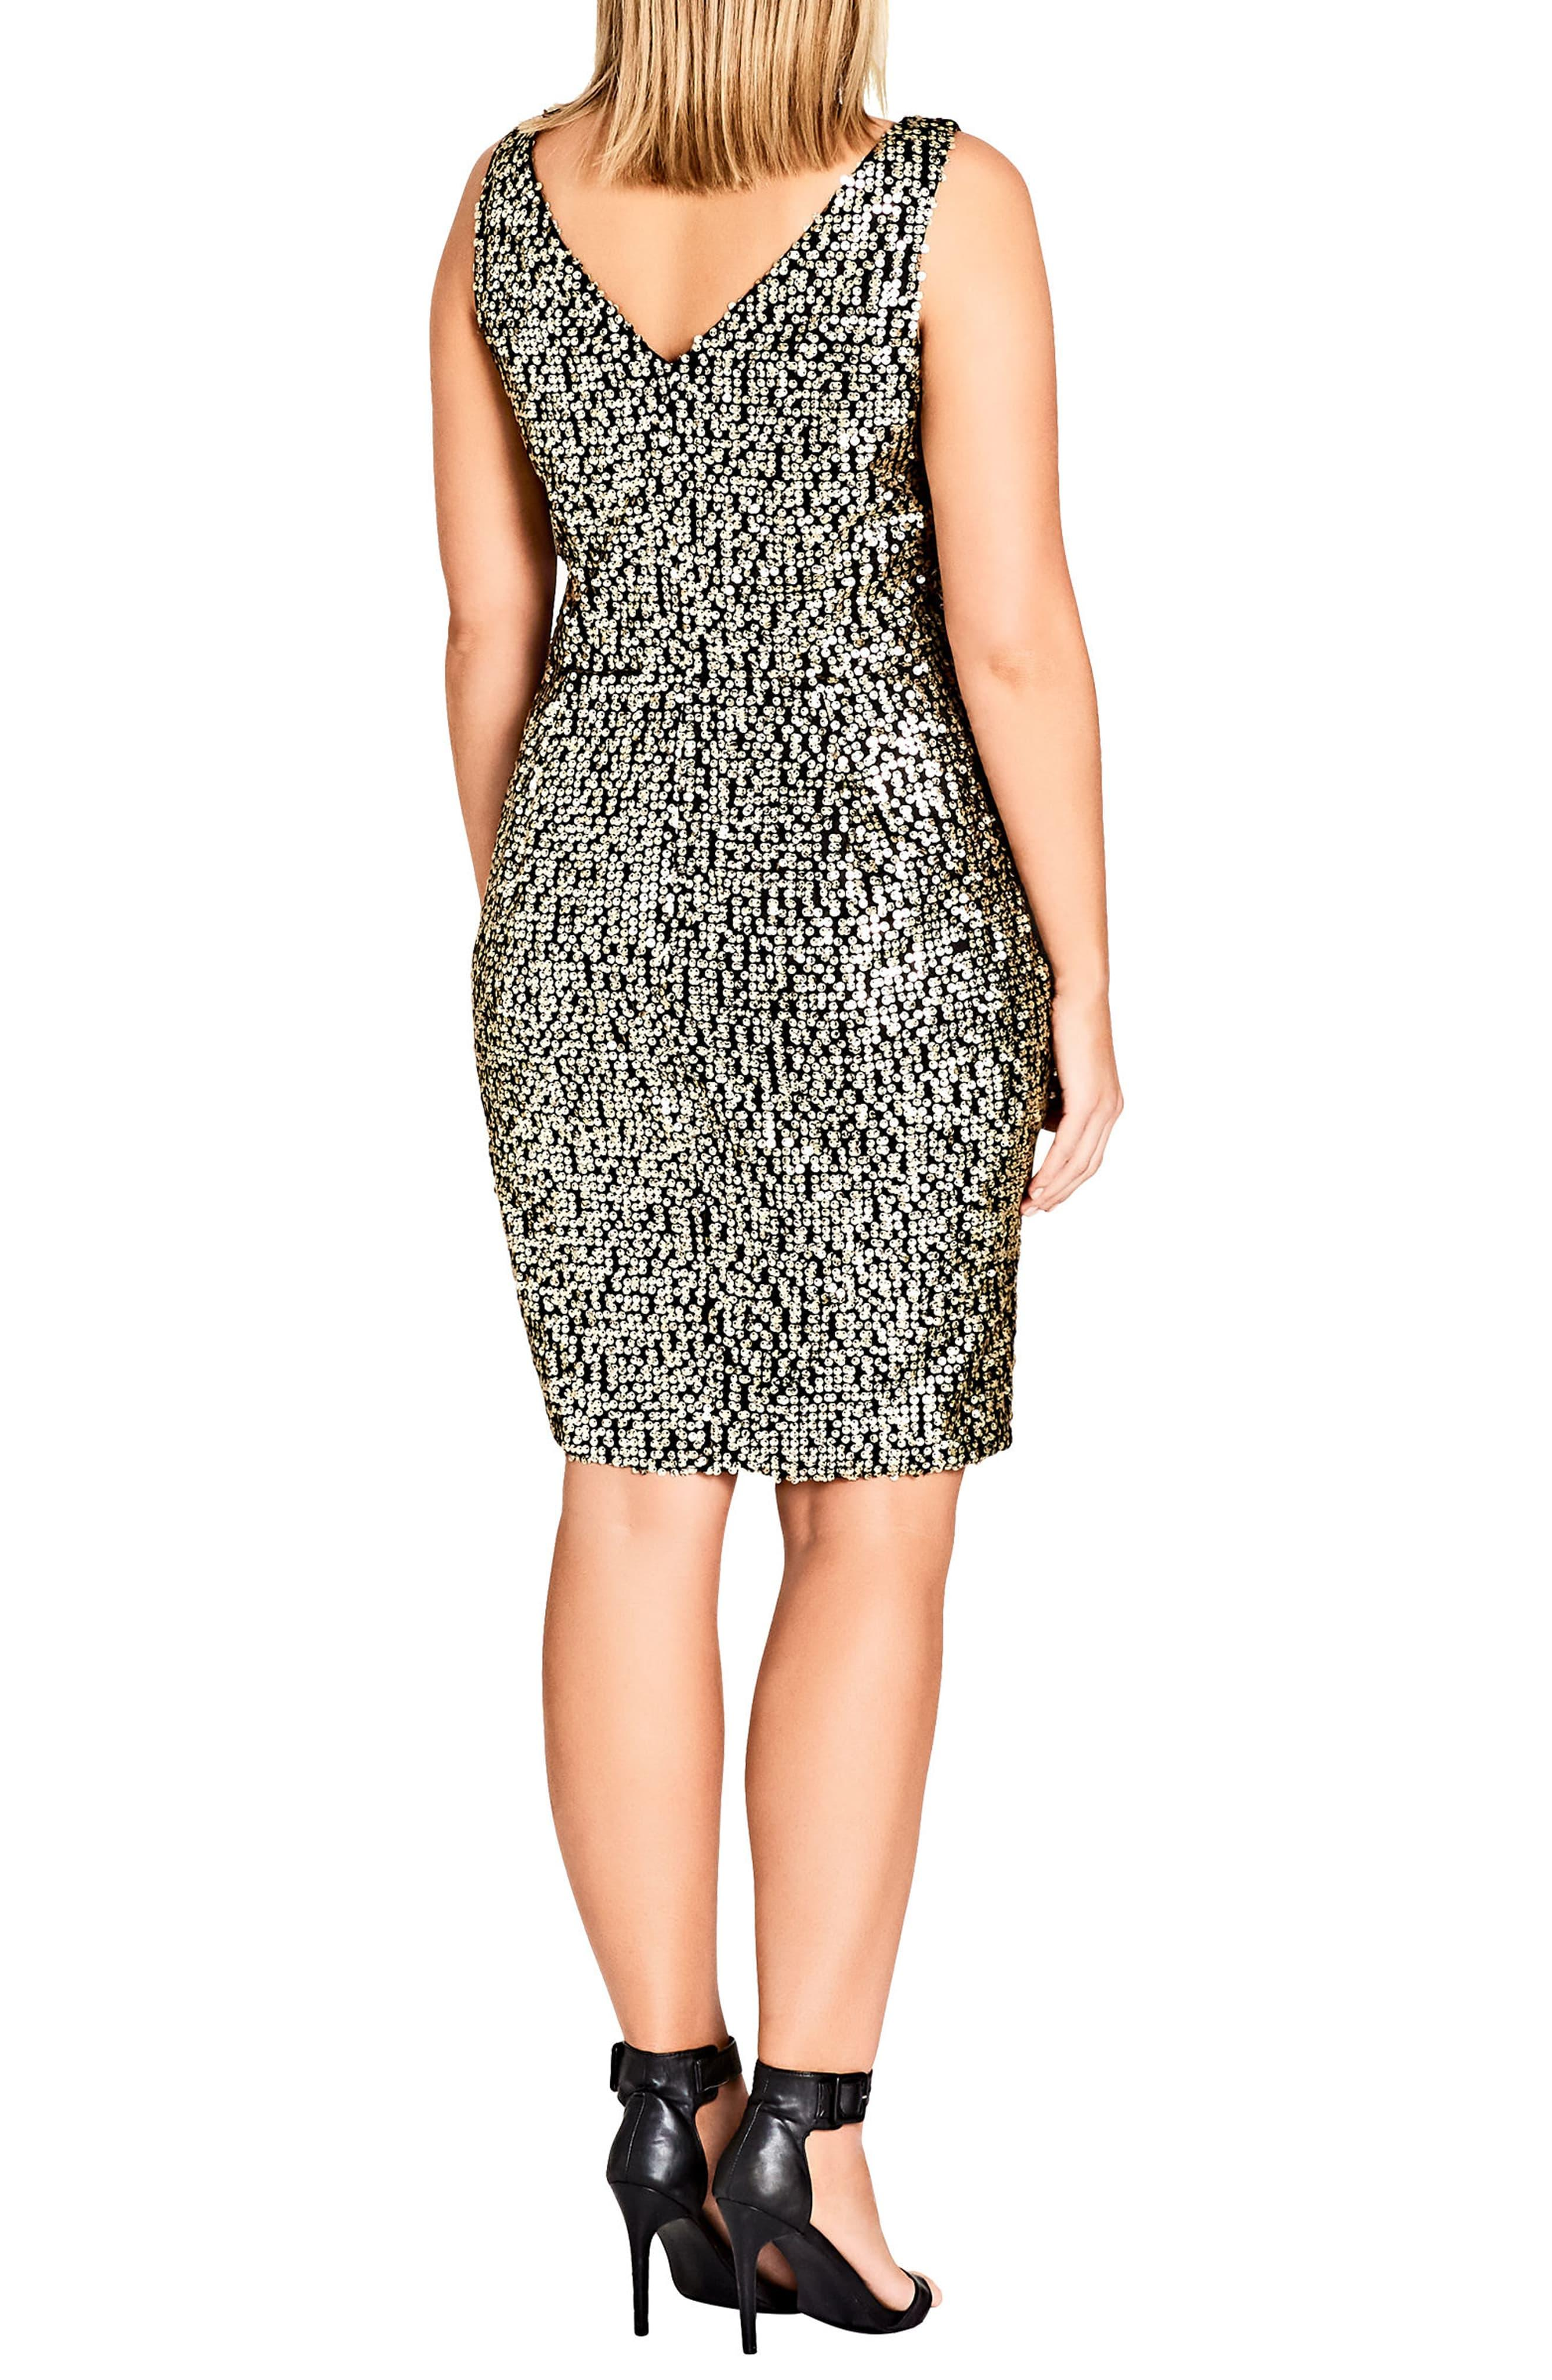 0bcd98b7 City Chic - Metallic Dazzle Me V-neck Sequin Dress - Lyst. View fullscreen